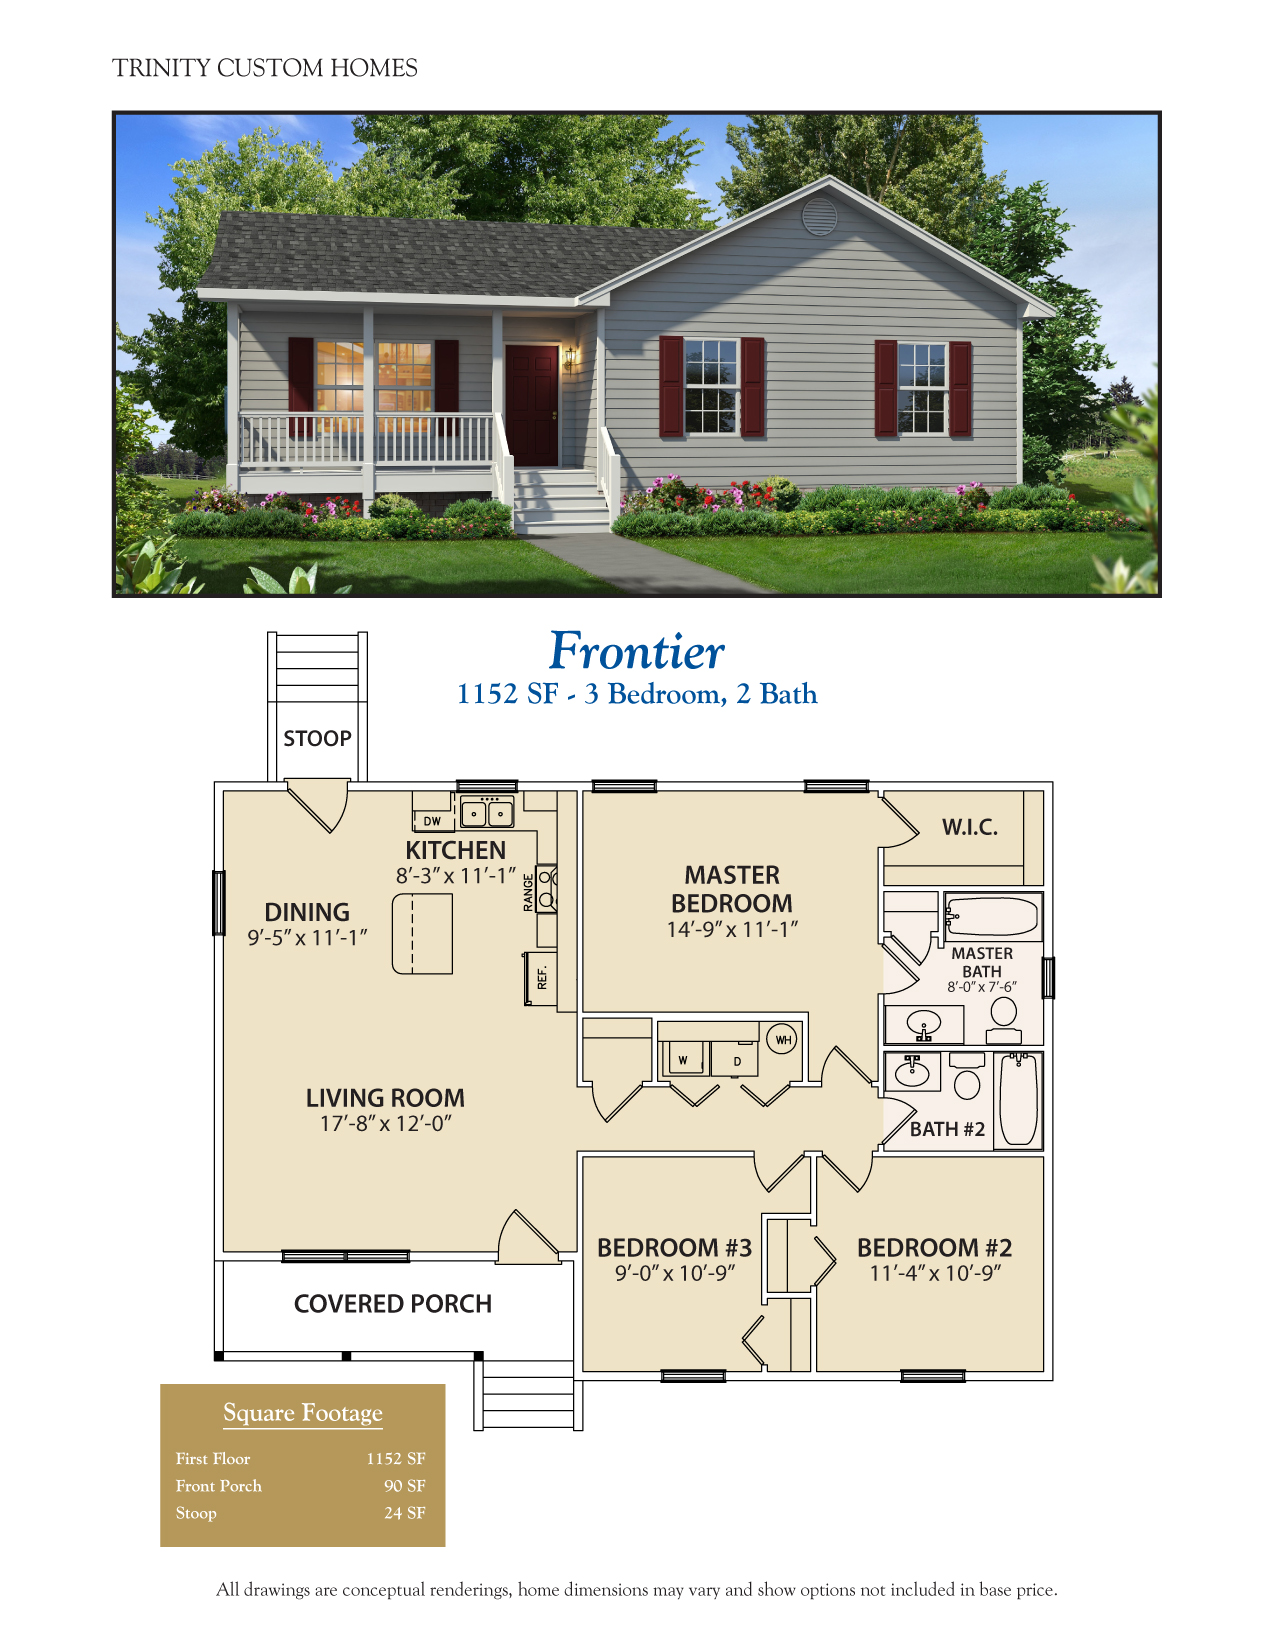 Trinity custom homes floor plans gurus floor for Custom home blueprints